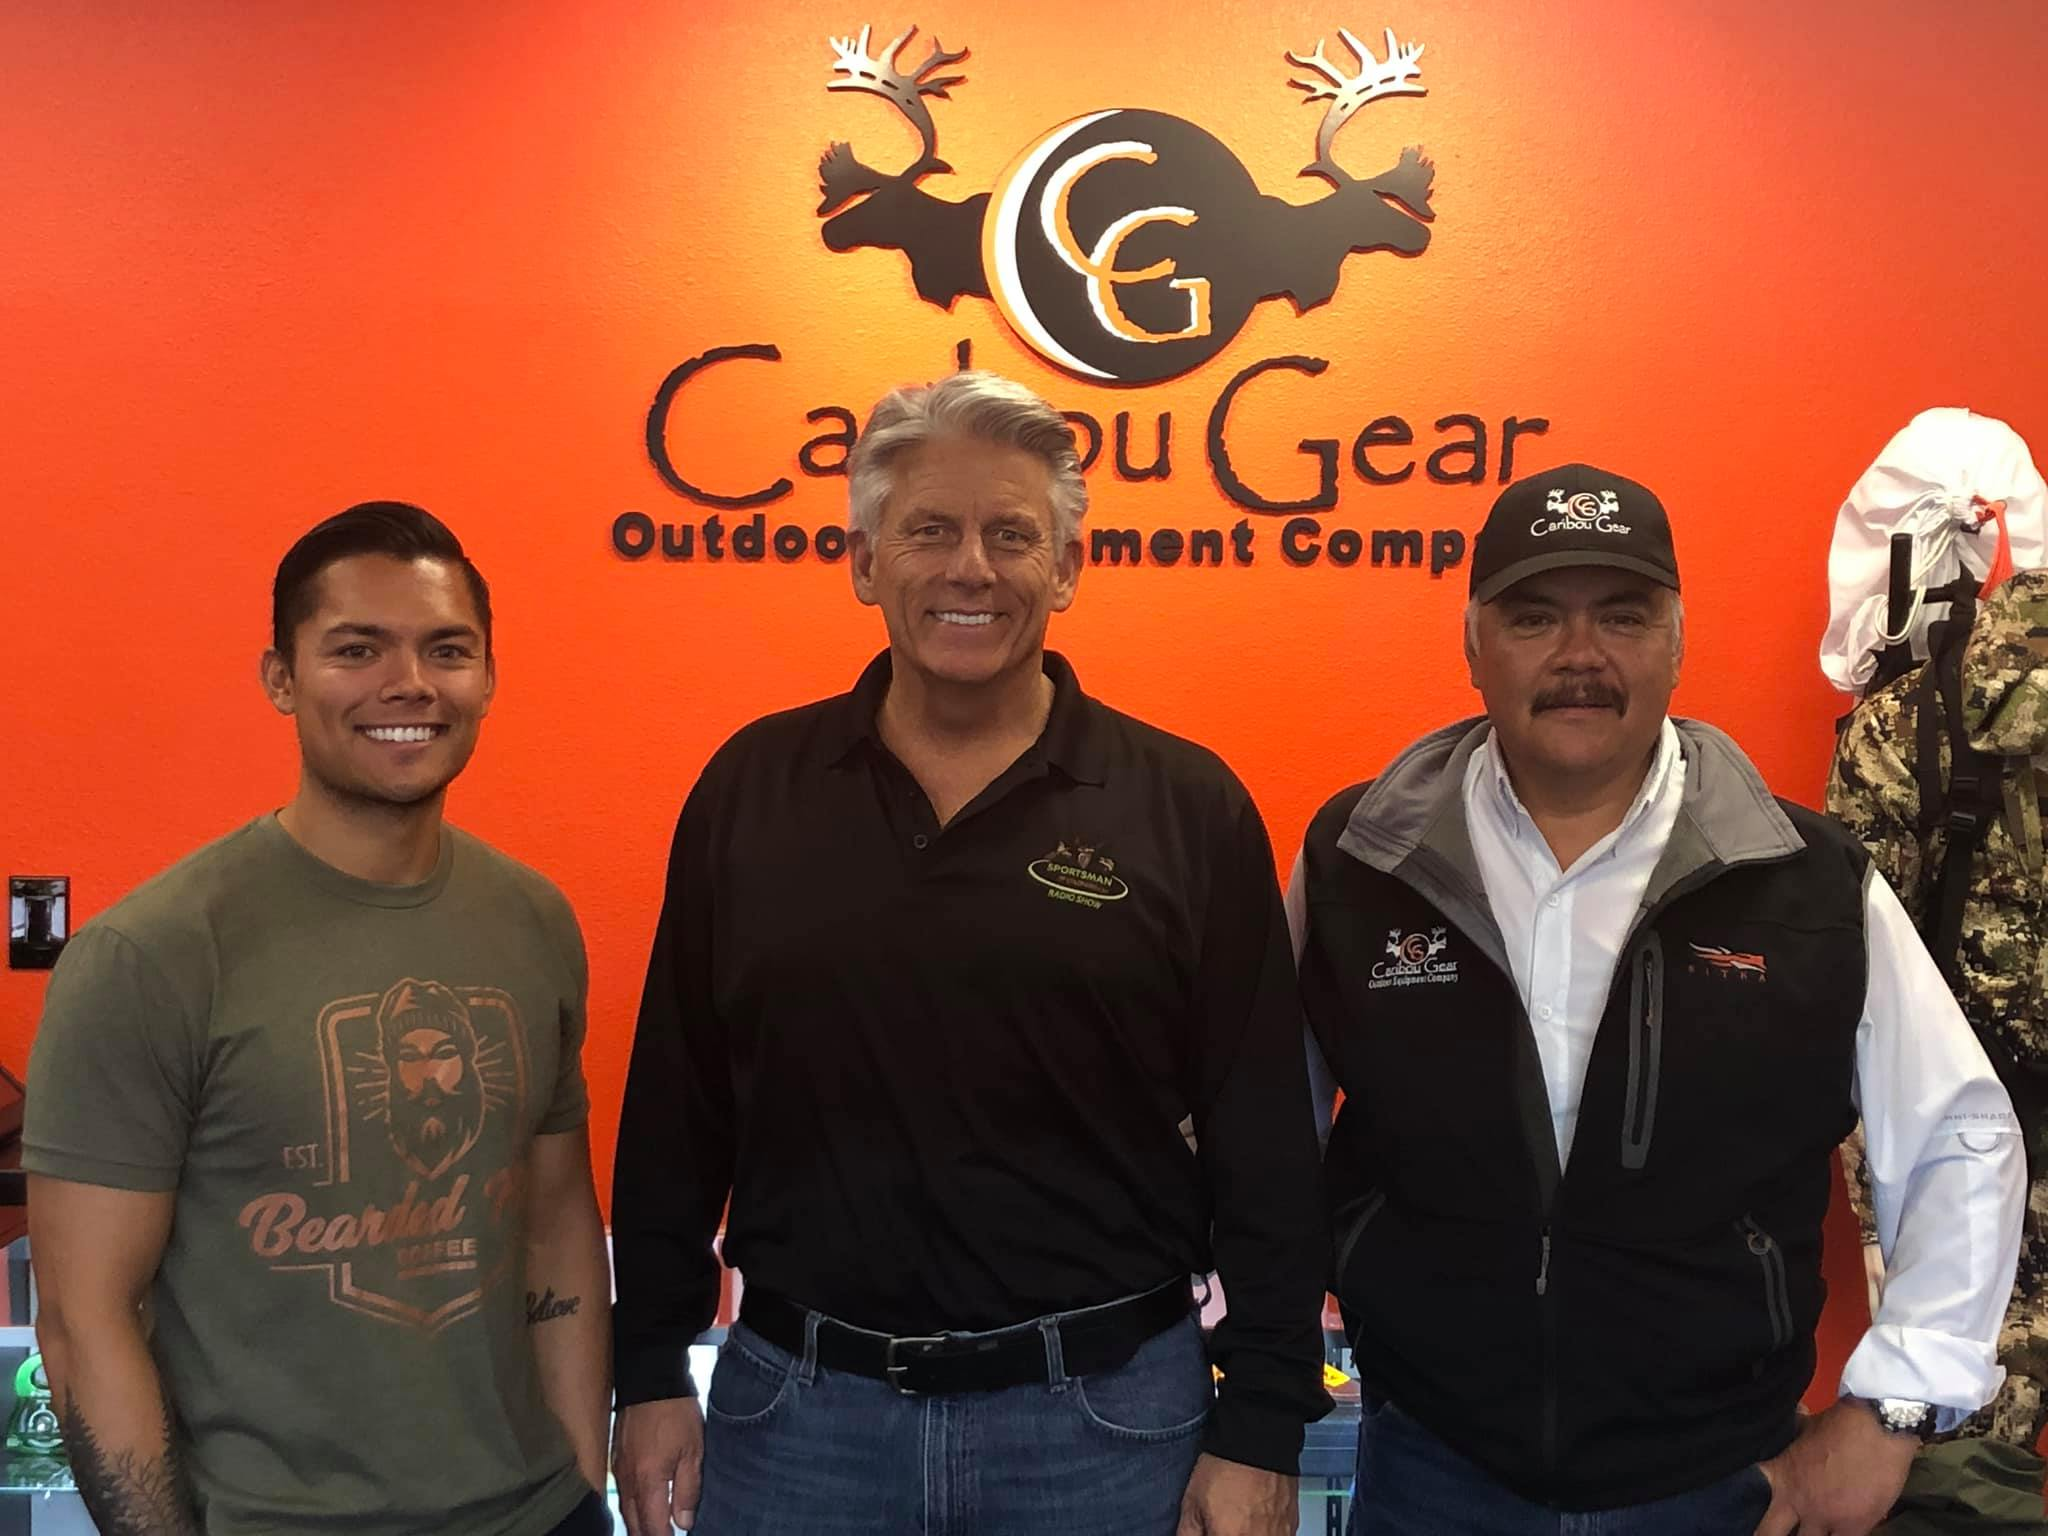 October 12, 2019: Hunting Gear Outfitters & Caribou Gear – Chronic Wasting Disease – Len Lyall Chevrolet – Colorado Outdoor Sports